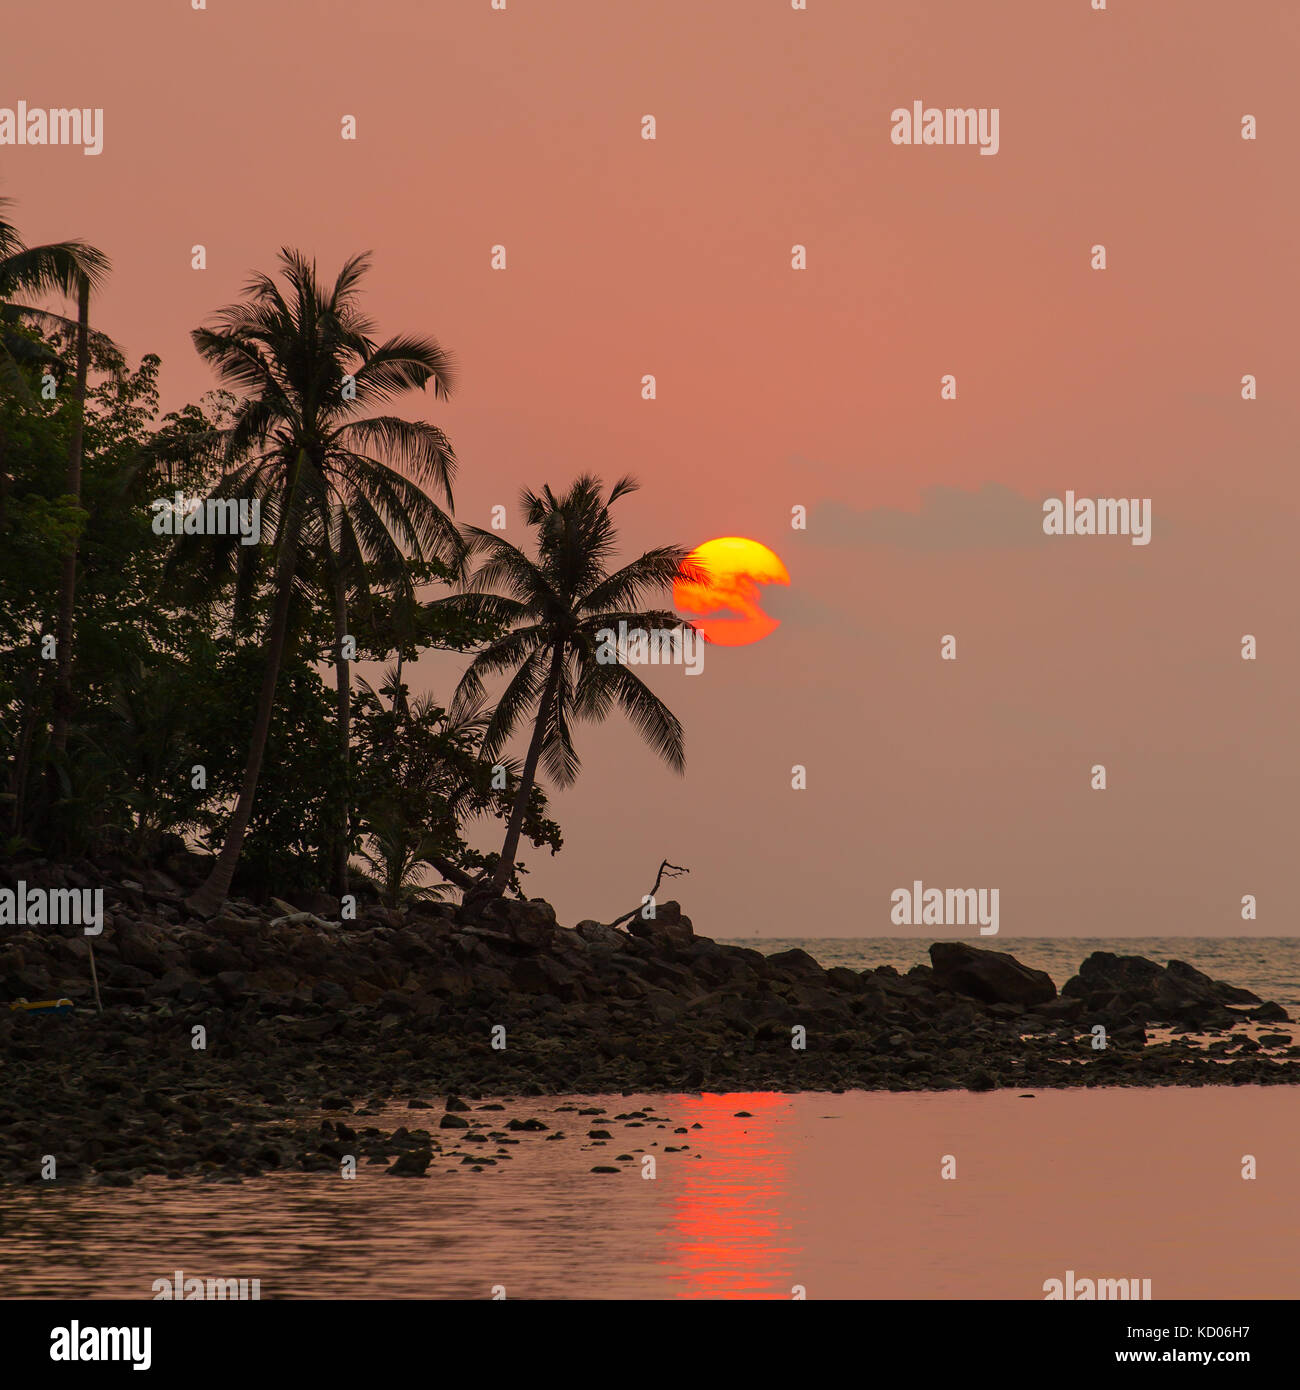 Palm trees silhouette at the sunset, Thailand - Stock Image